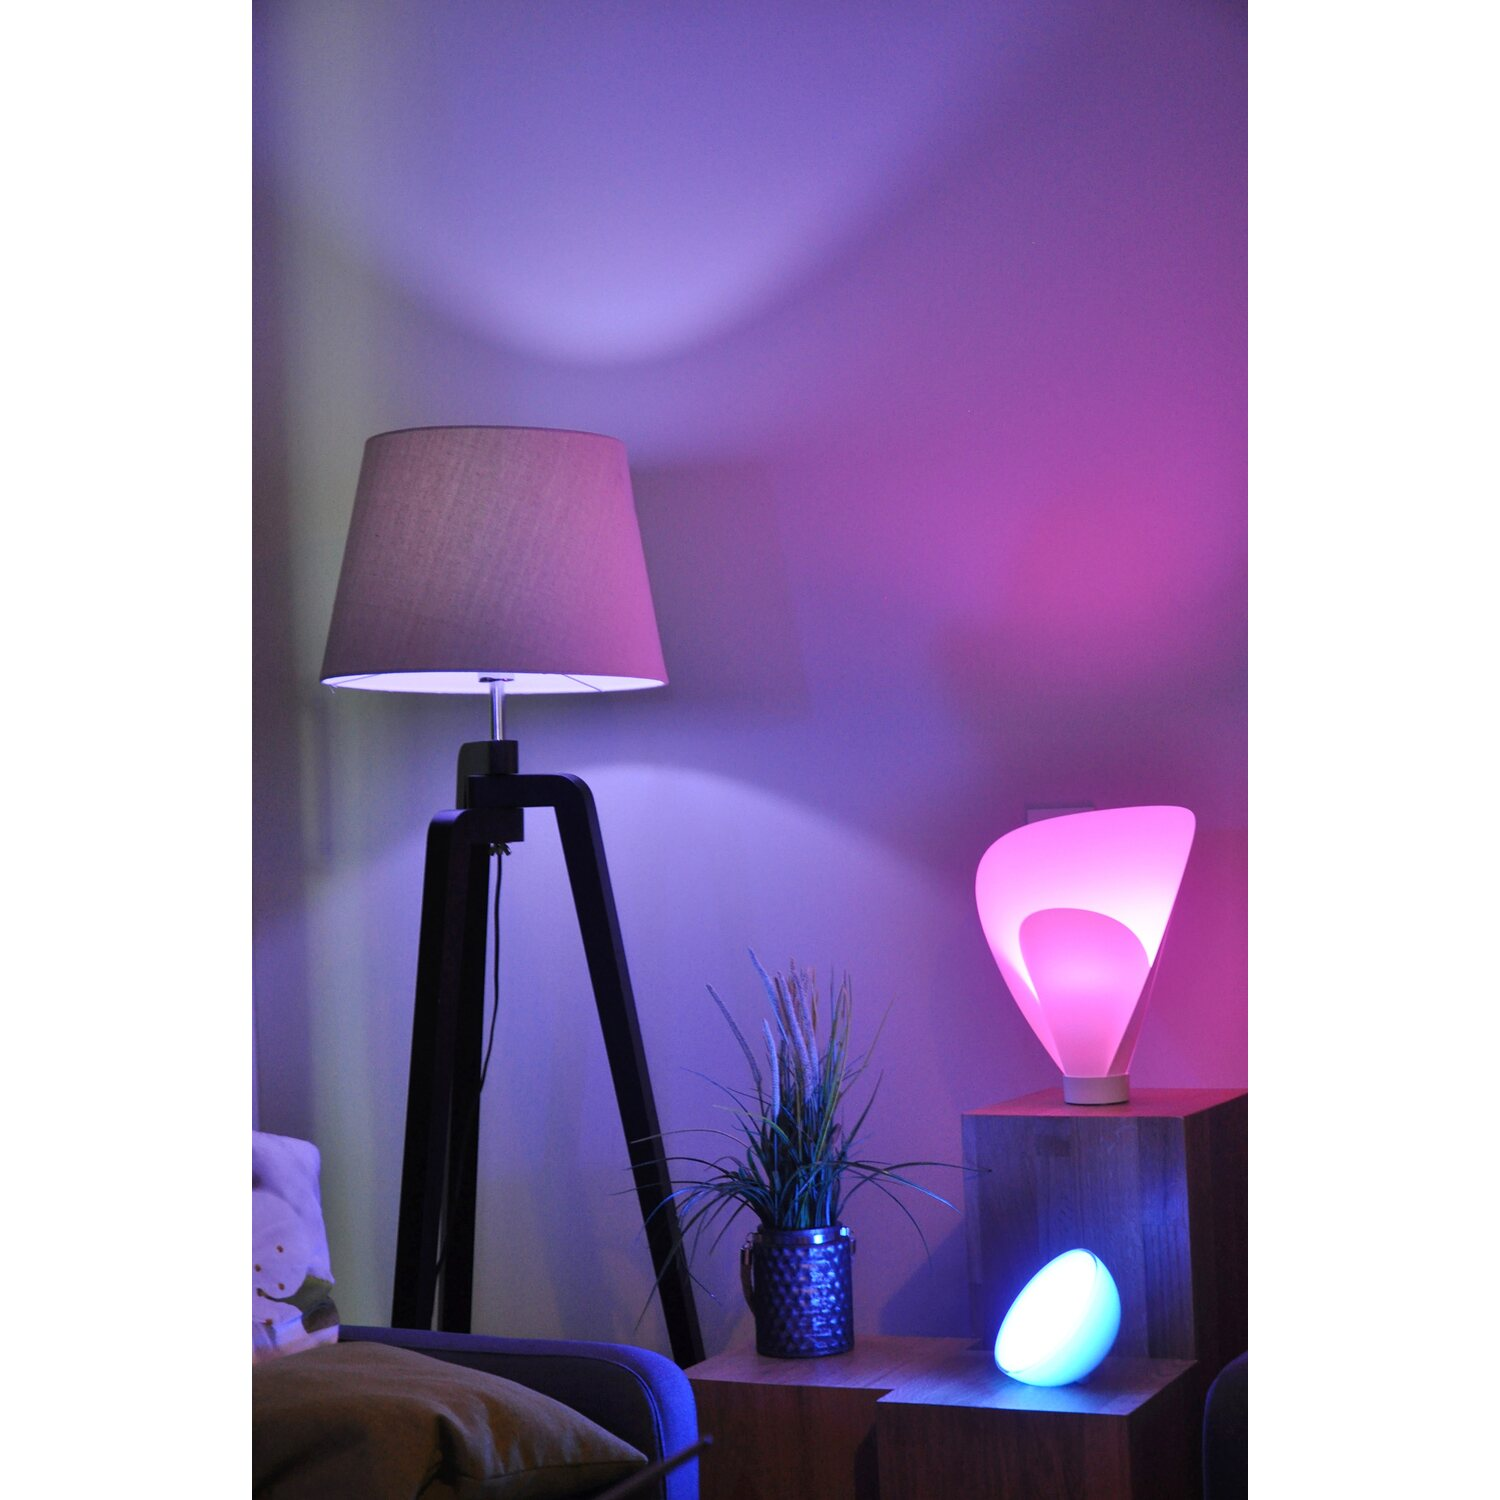 philips hue led lampe e27 10w wei mehrfarbig color ambience starter set eek a kaufen bei obi. Black Bedroom Furniture Sets. Home Design Ideas